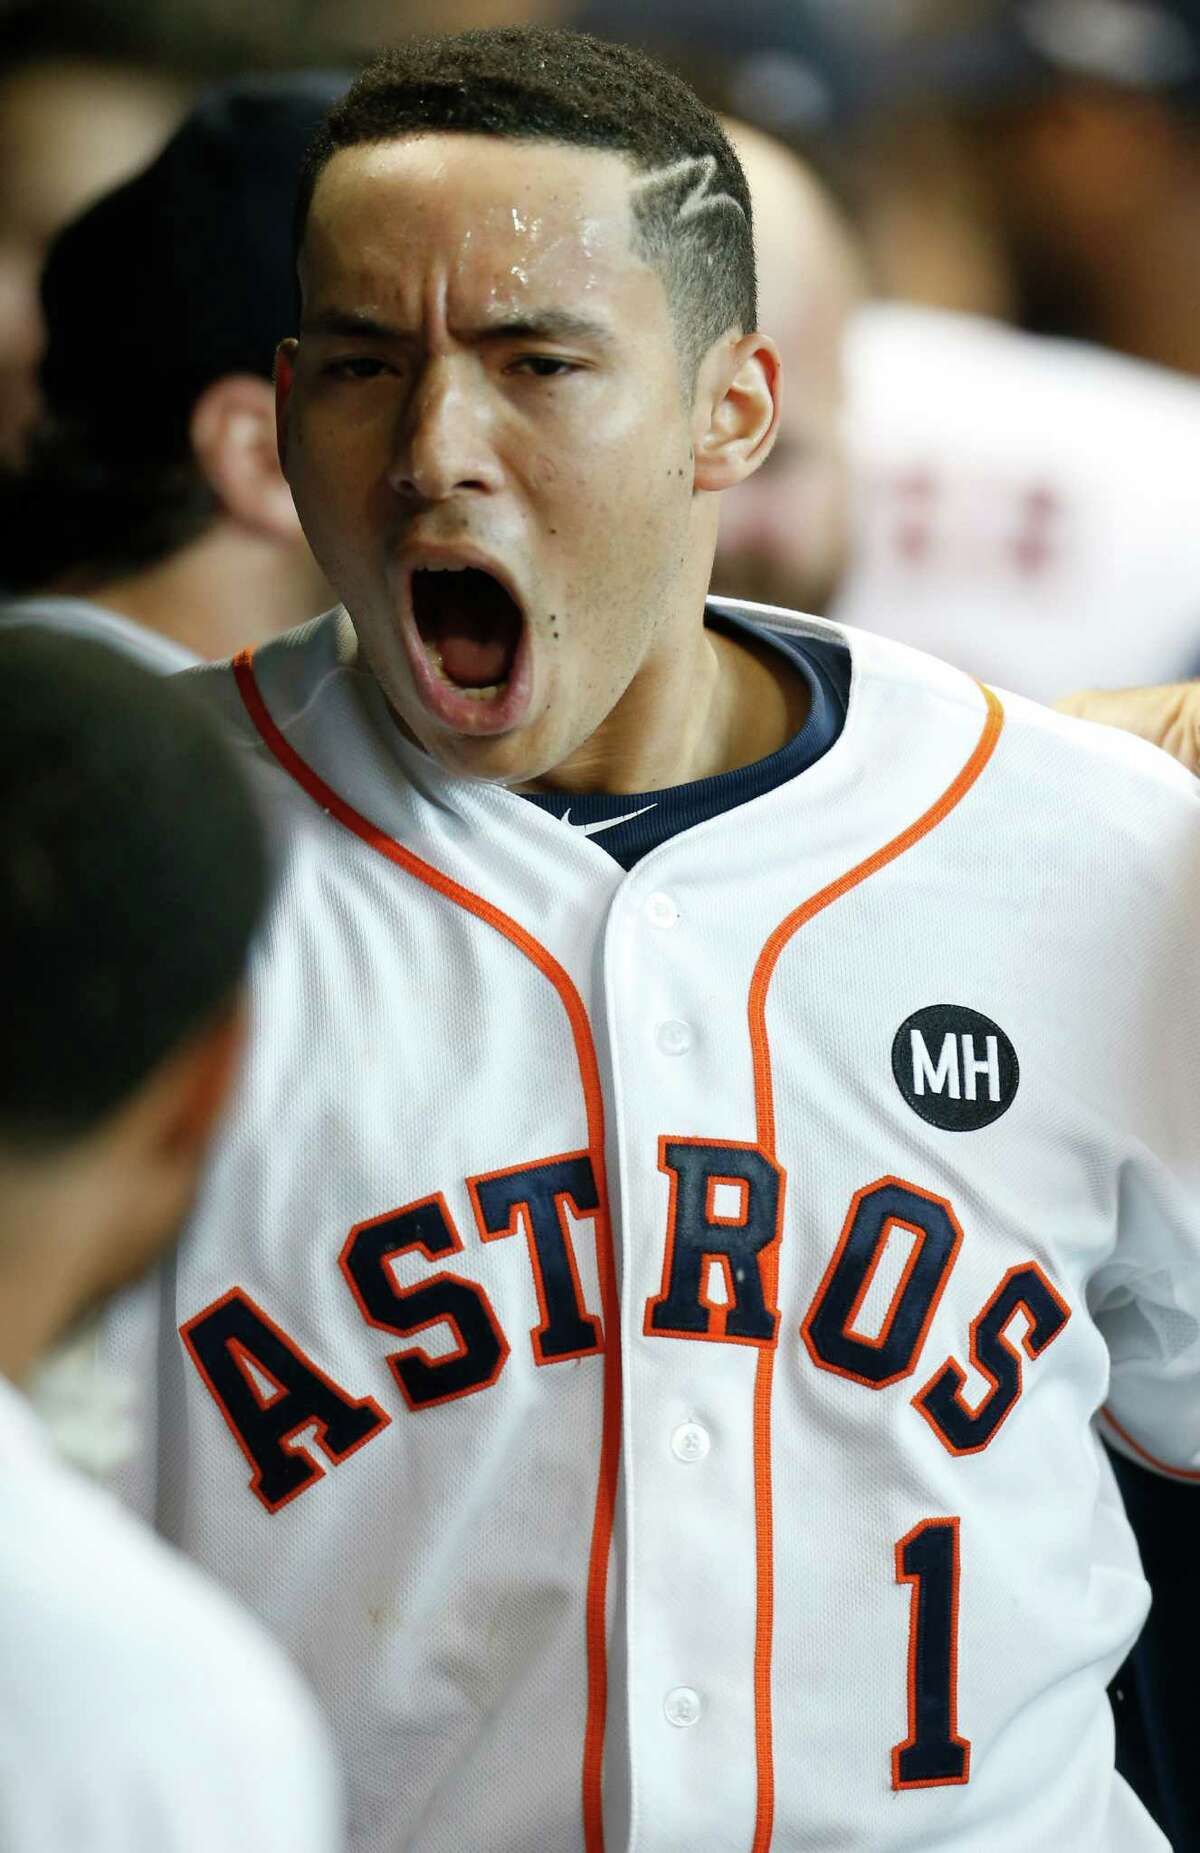 Houston Astros shortstop Carlos Correa (1) yells in the dugout after hitting a home run off Kansas City Royals reliever Ryan Madson during the seventh inning of Game 4 of the American League Division Series at Minute Maid Park on Monday, Oct. 12, 2015, in Houston. ( Karen Warren / Houston Chronicle )